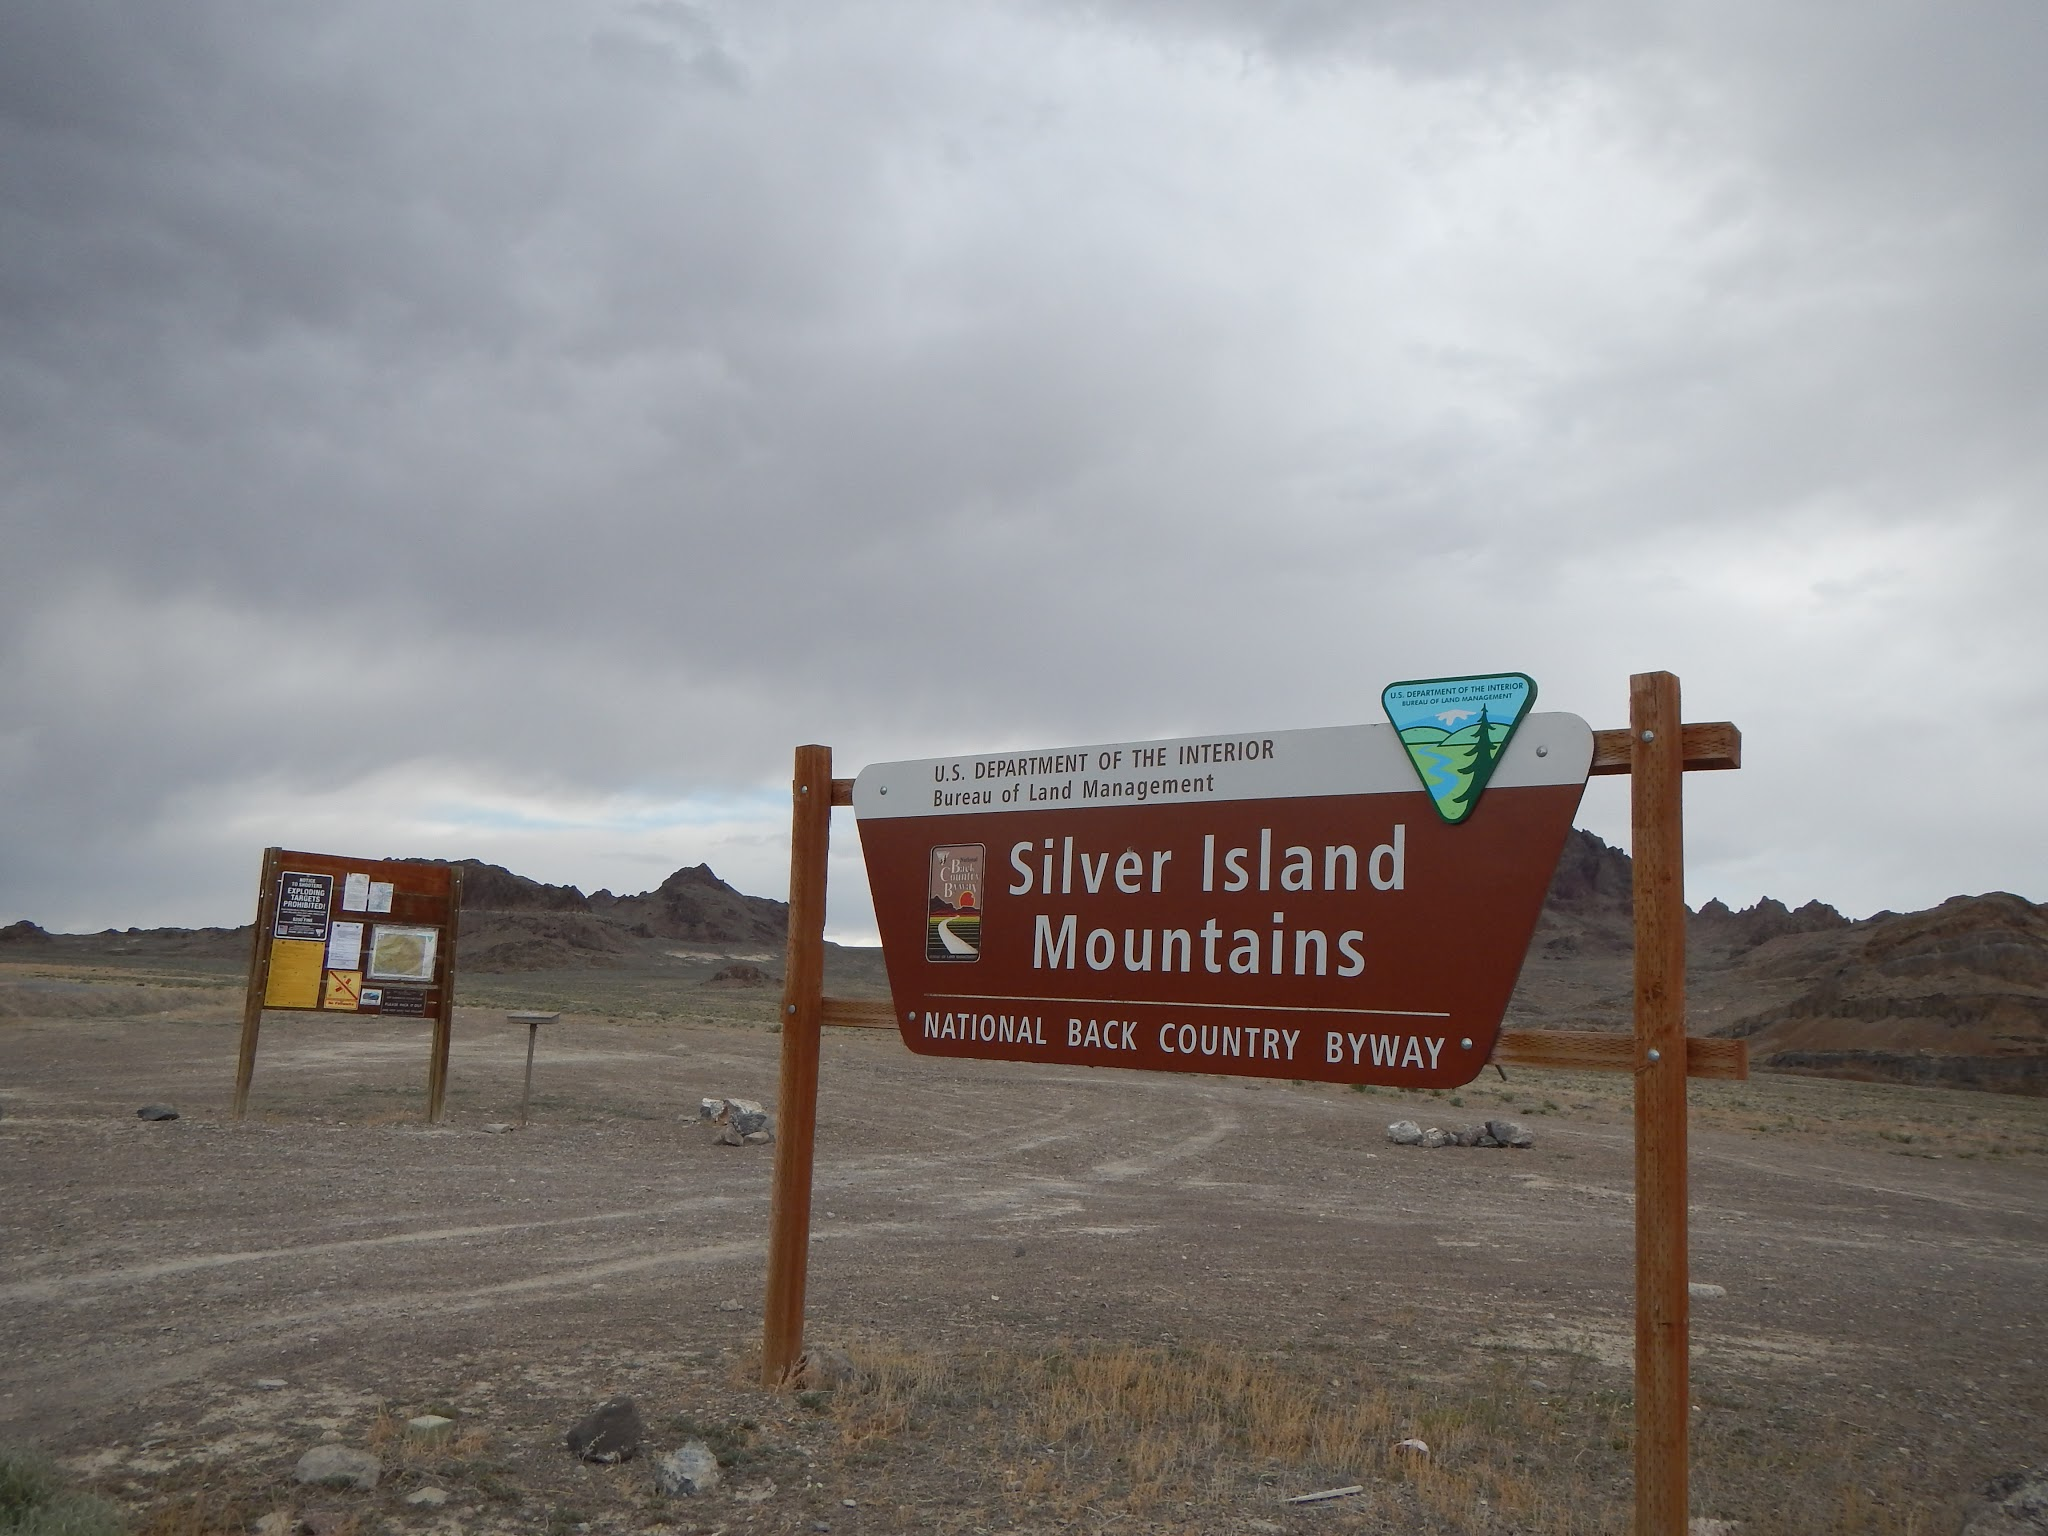 Photo: Gateway to the rarely visited Silver Island Mountains.